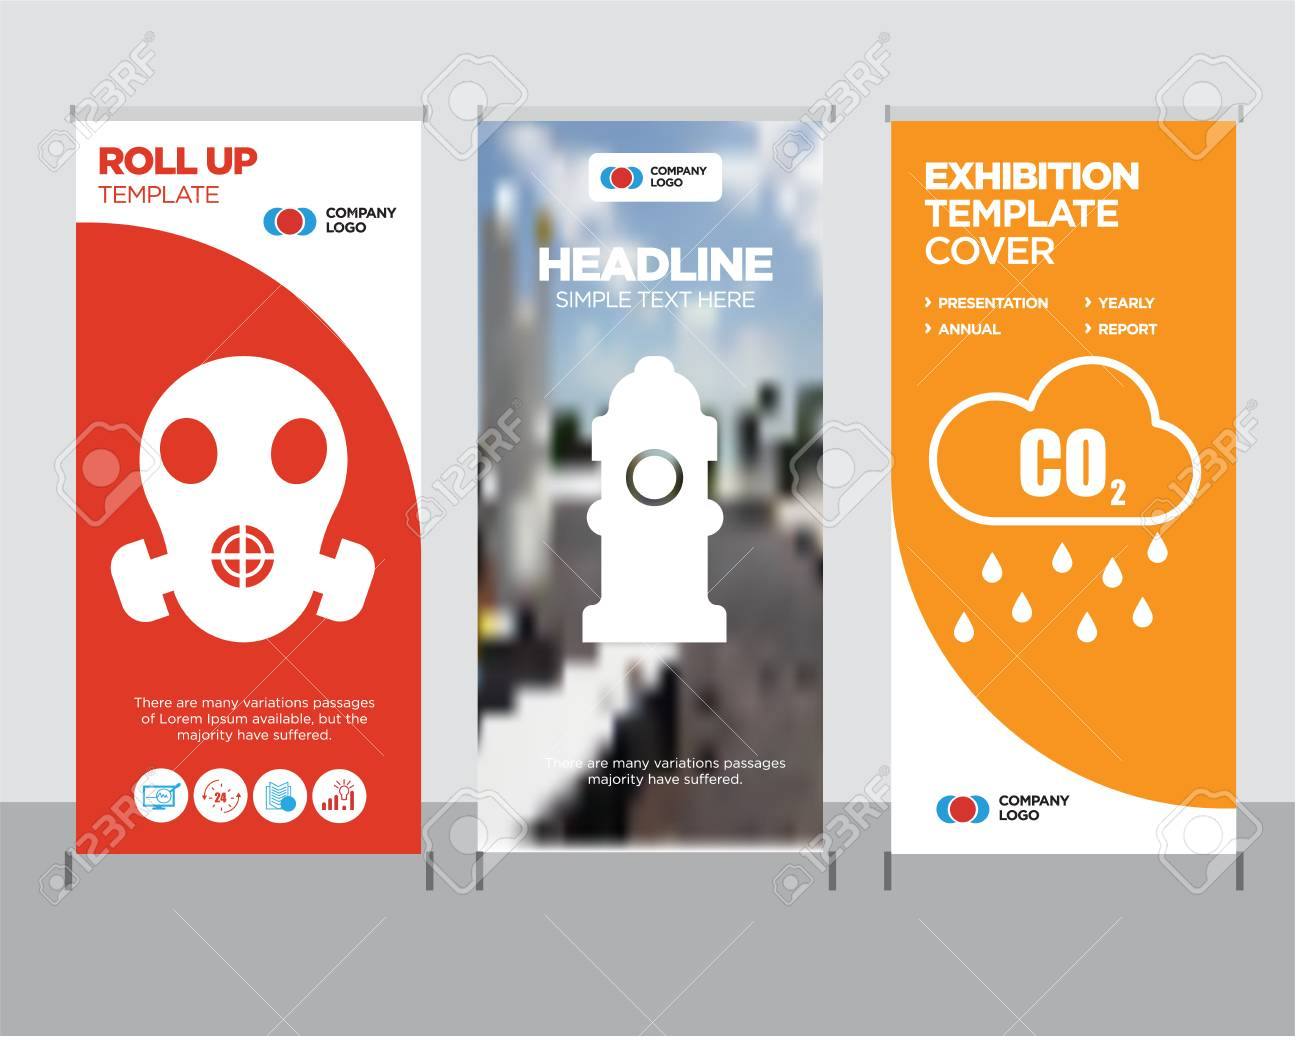 co2 modern business roll up banner design template fire hydrant